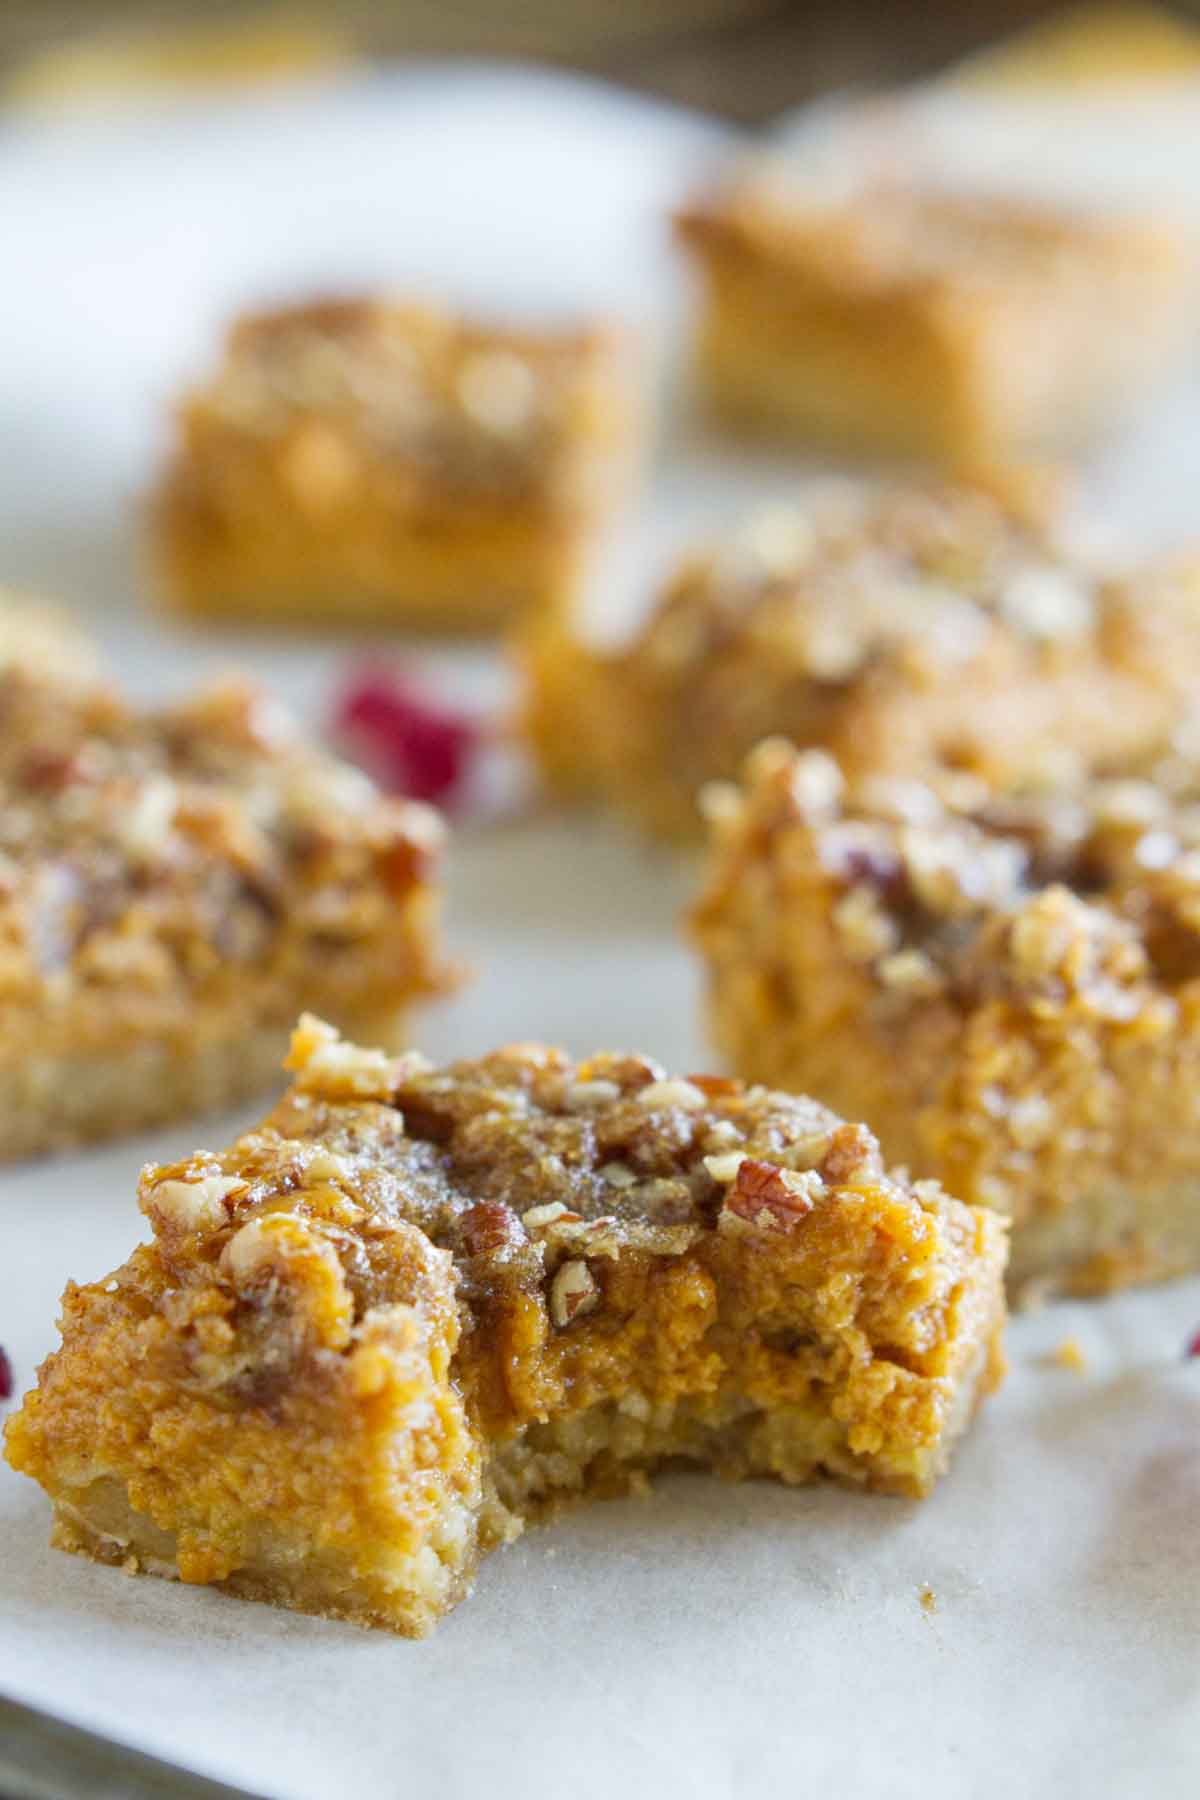 pumpkin pie bar with bite take from it